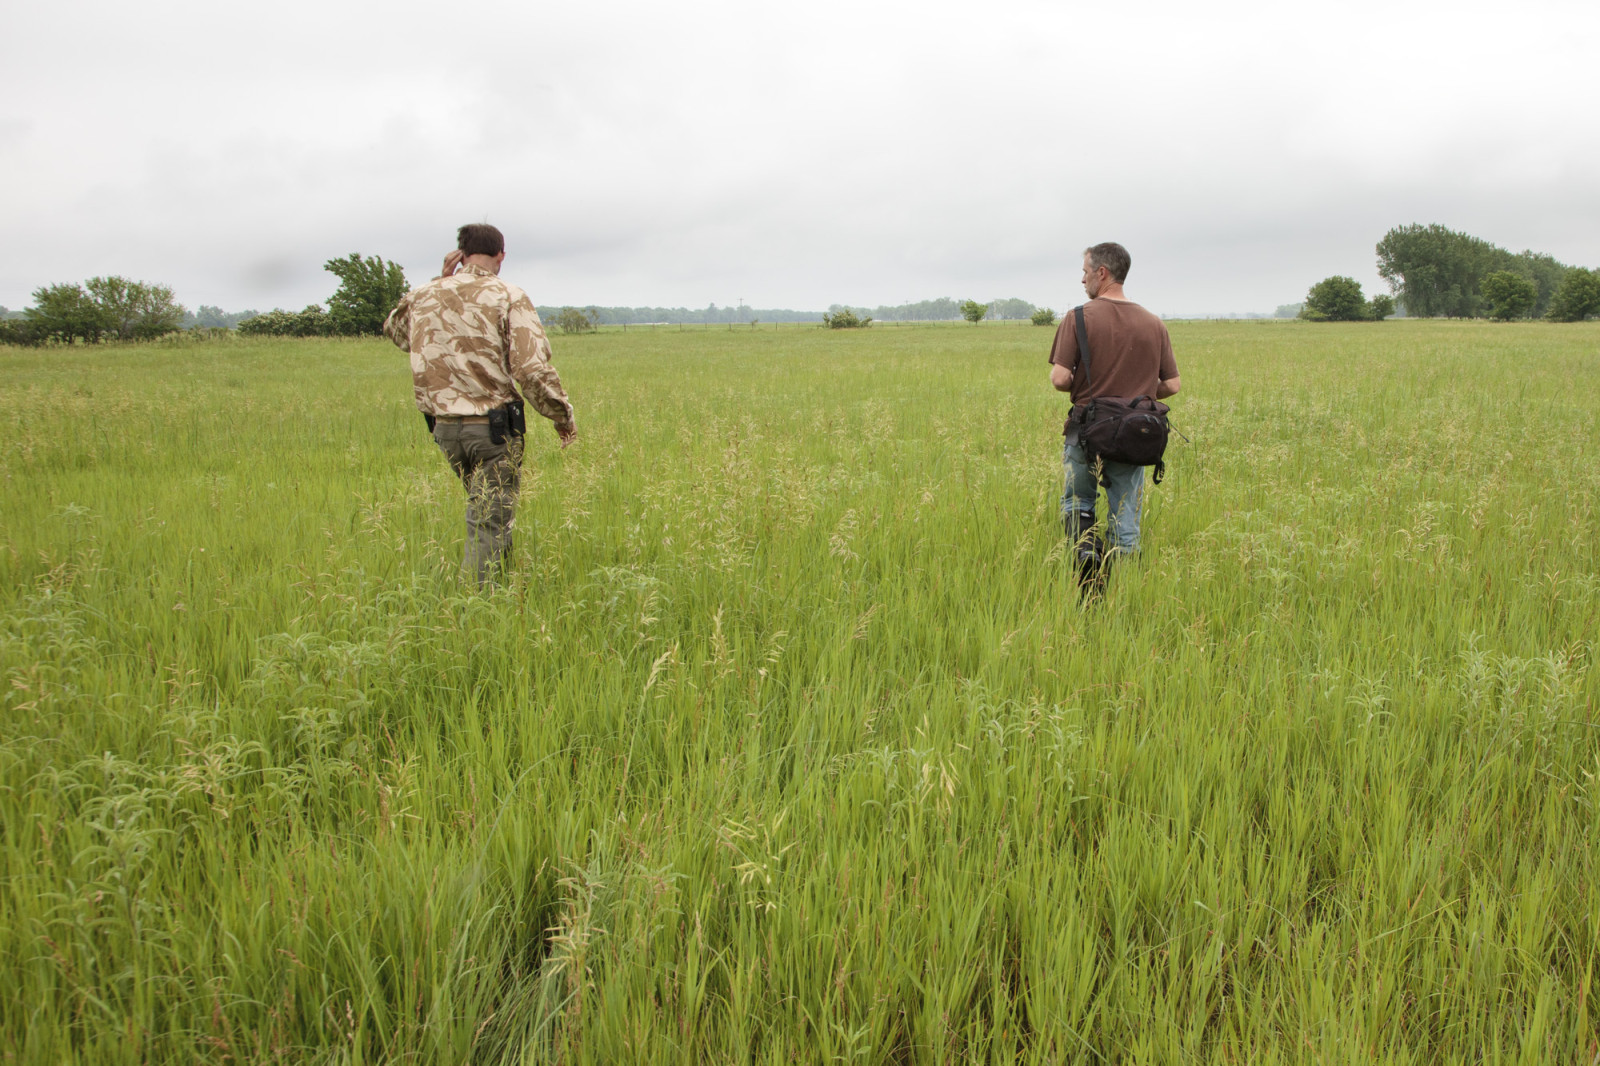 Chris Helzer (right) and Nelson Winkel (Land Manager of the Platte River Prairies, left) discuss management strategies while surveying a prairie. (Evan Barrientos)